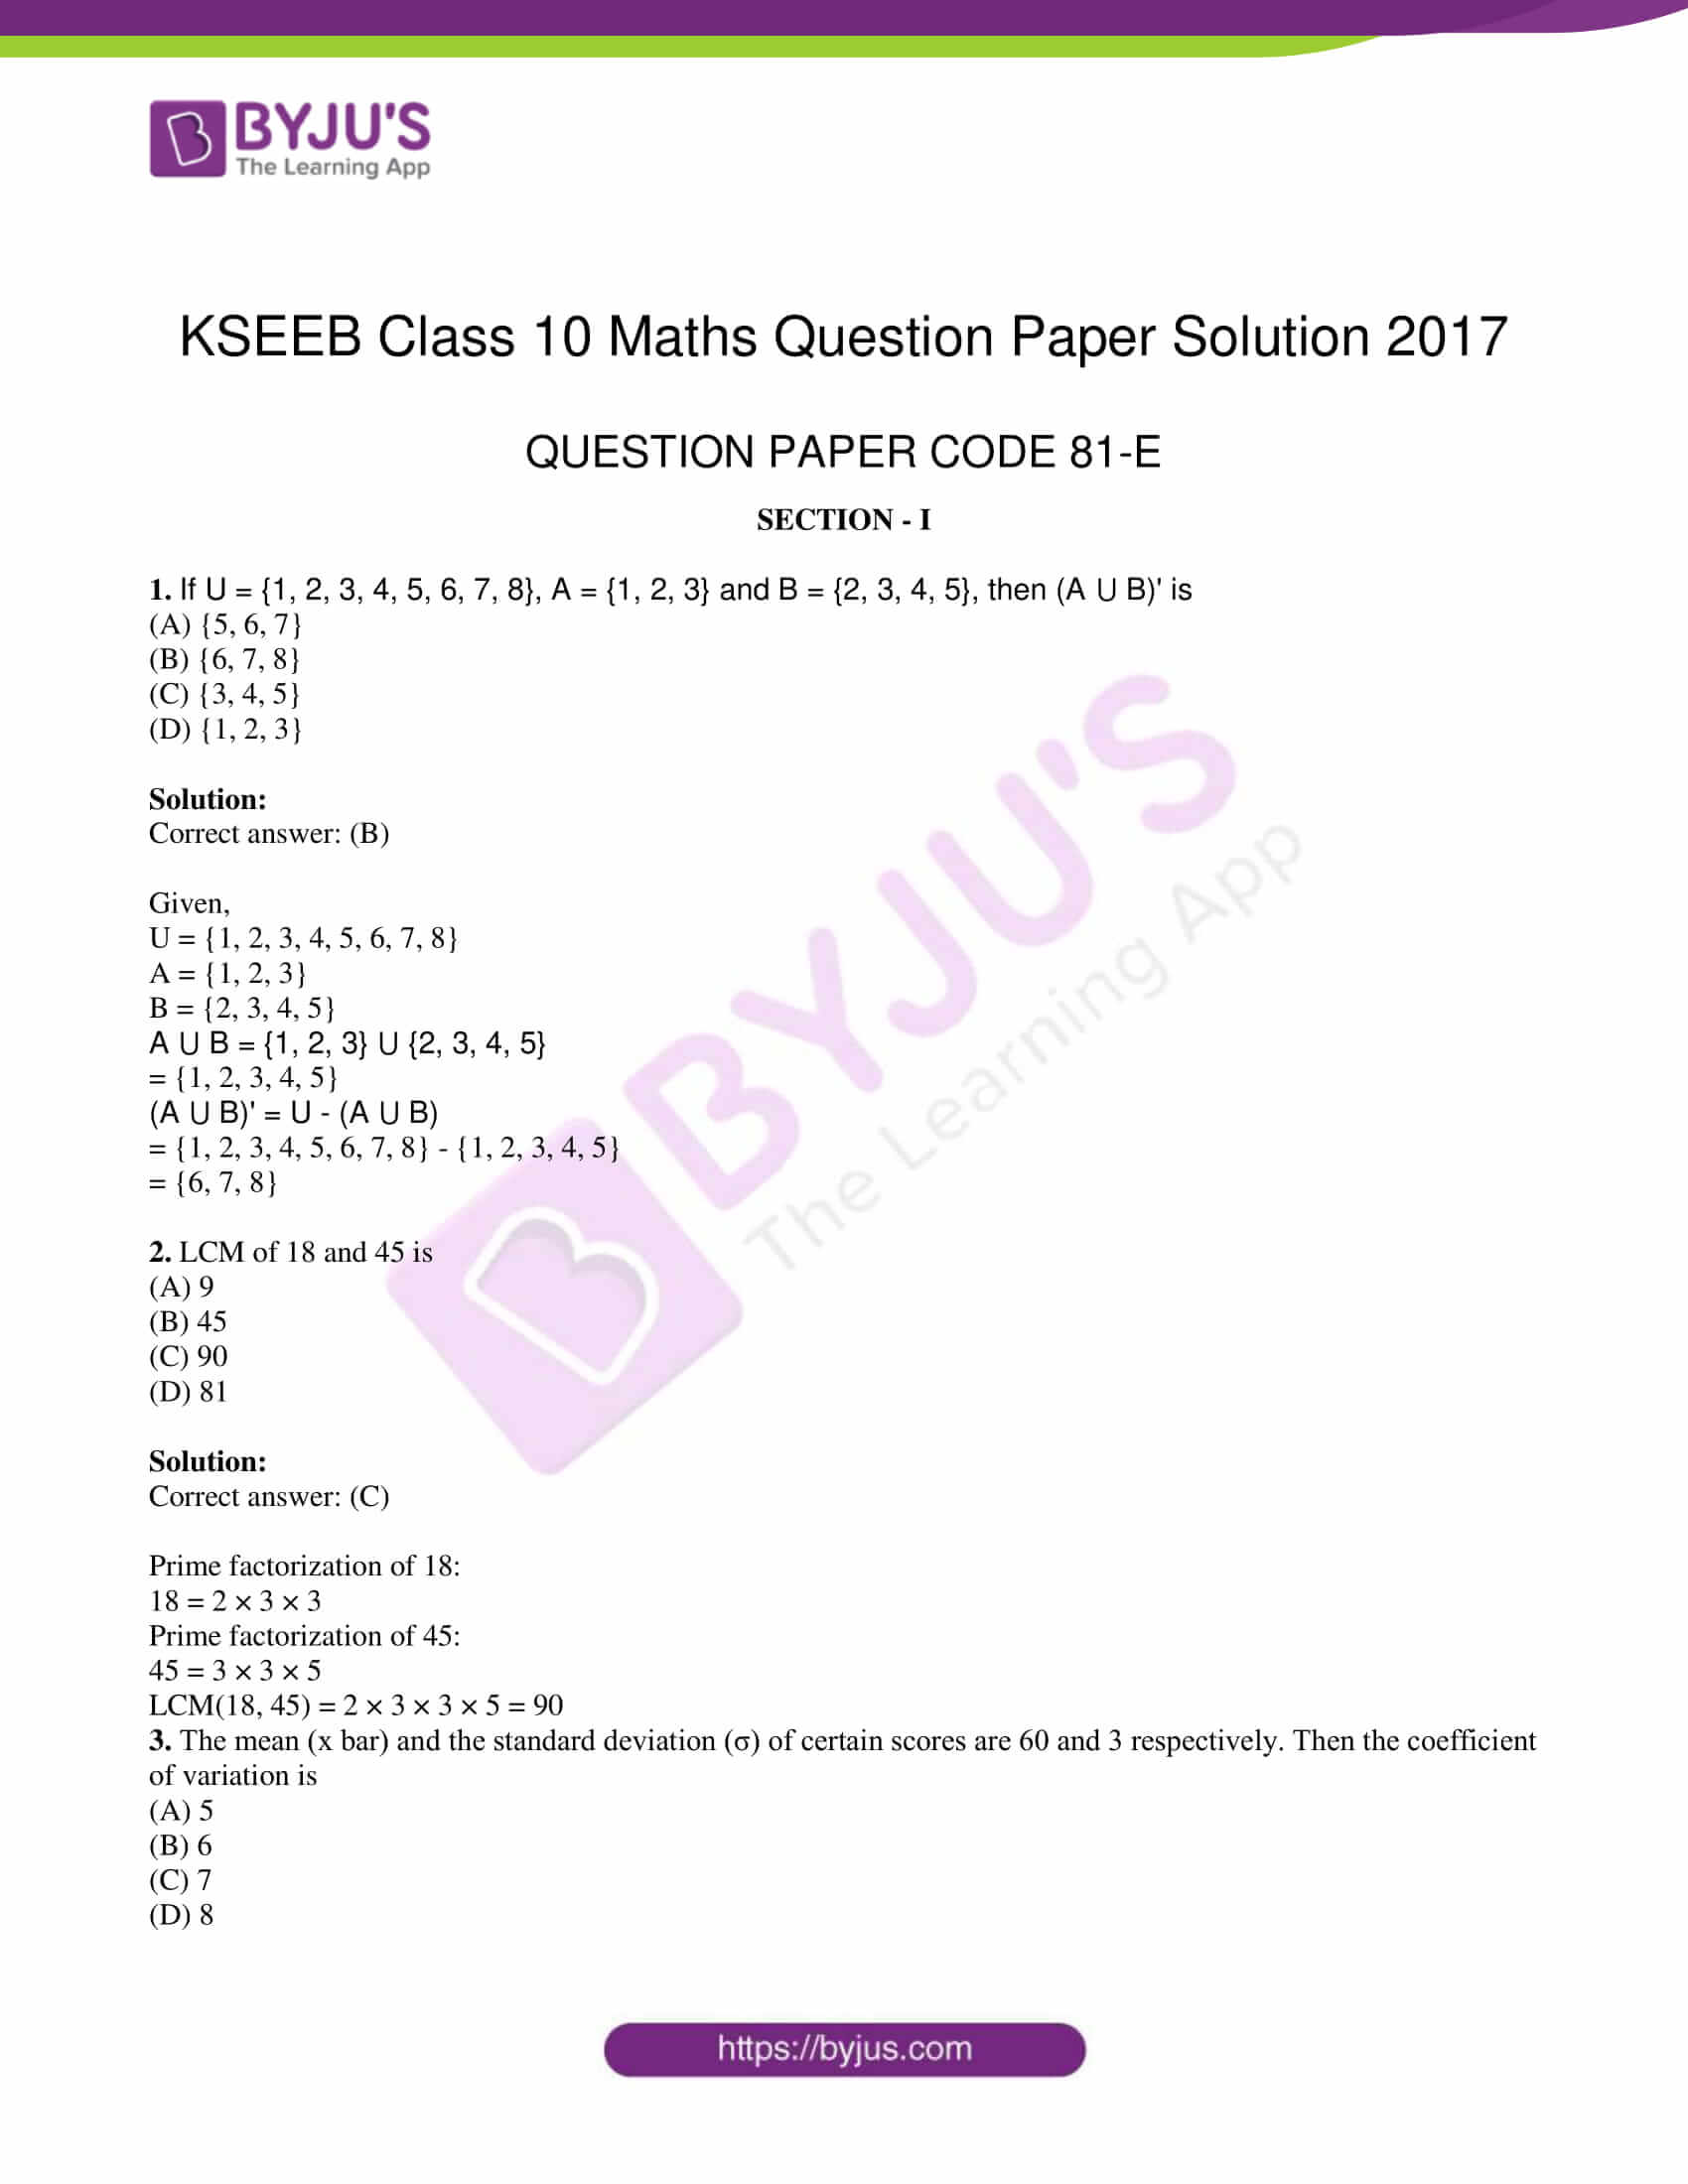 kseeb class 10 maths question paper solution 2017 01